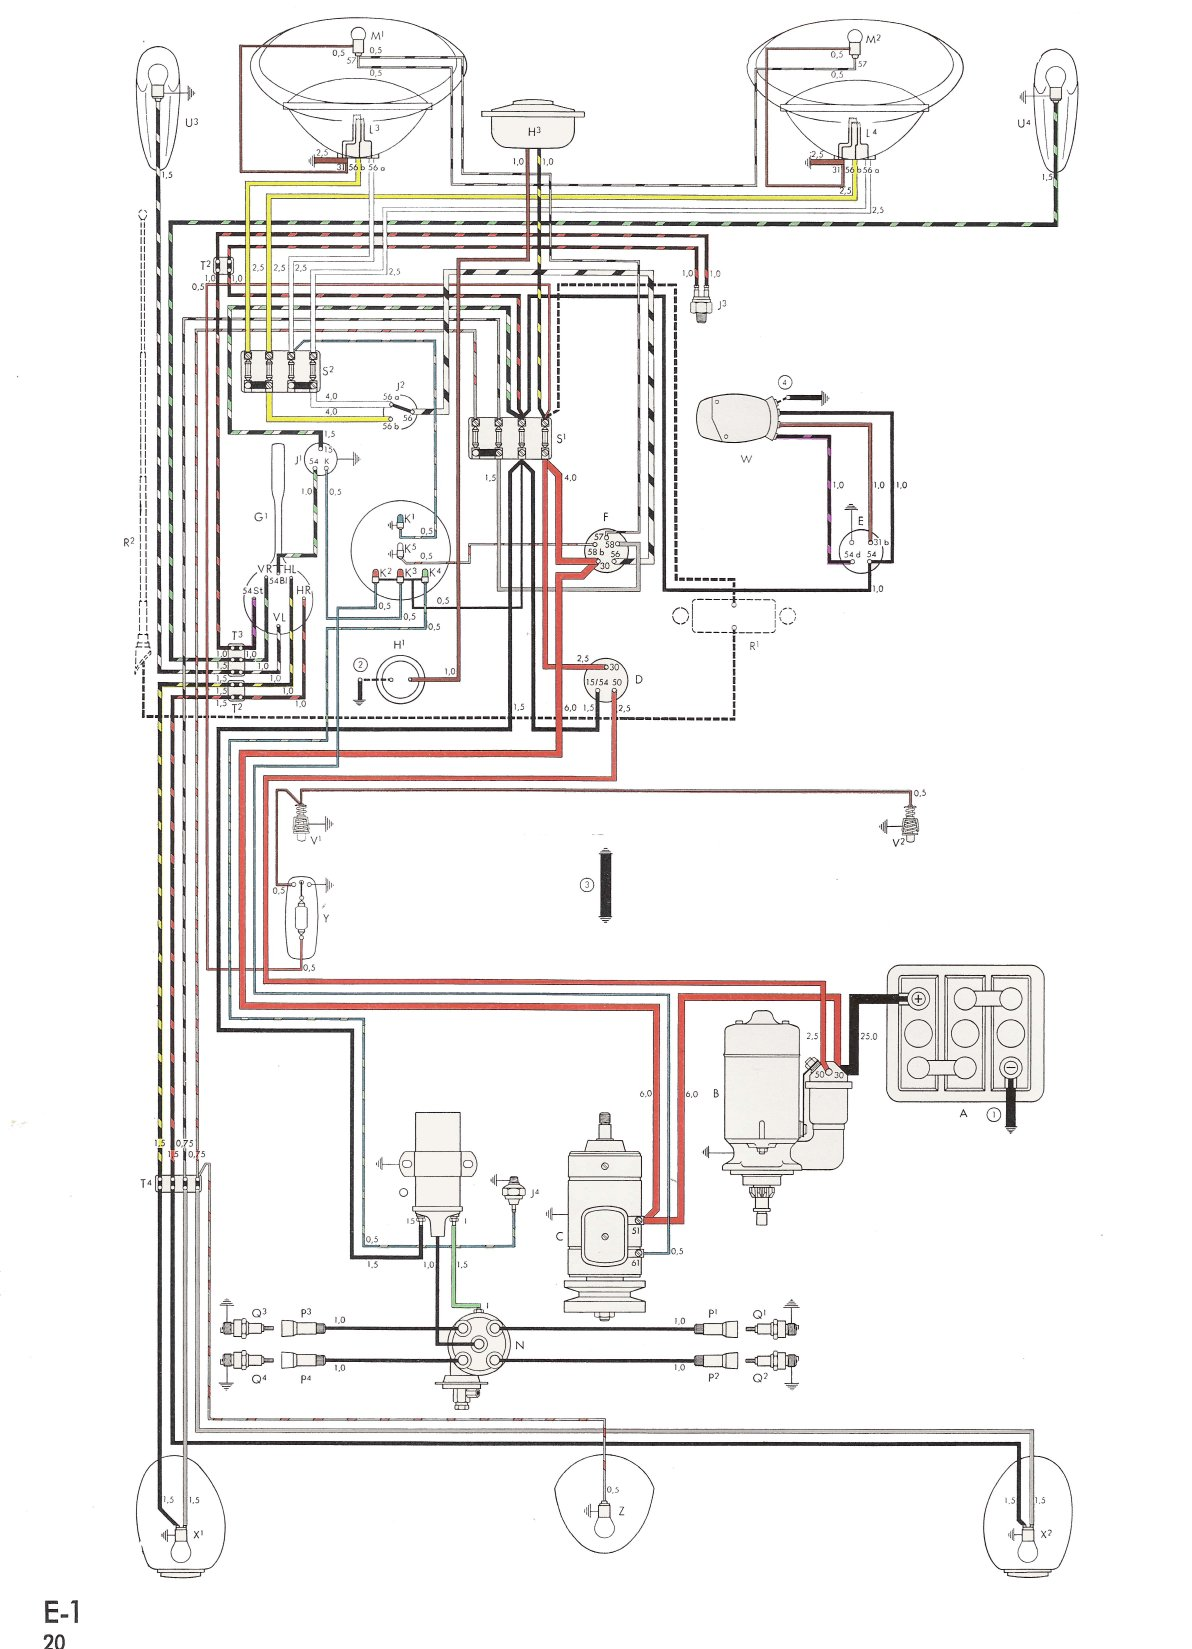 thesamba com type 1 wiring diagrams rh thesamba com 1967 VW Beetle Wiring Diagram  2003 Volkswagen Beetle Wiring Diagram